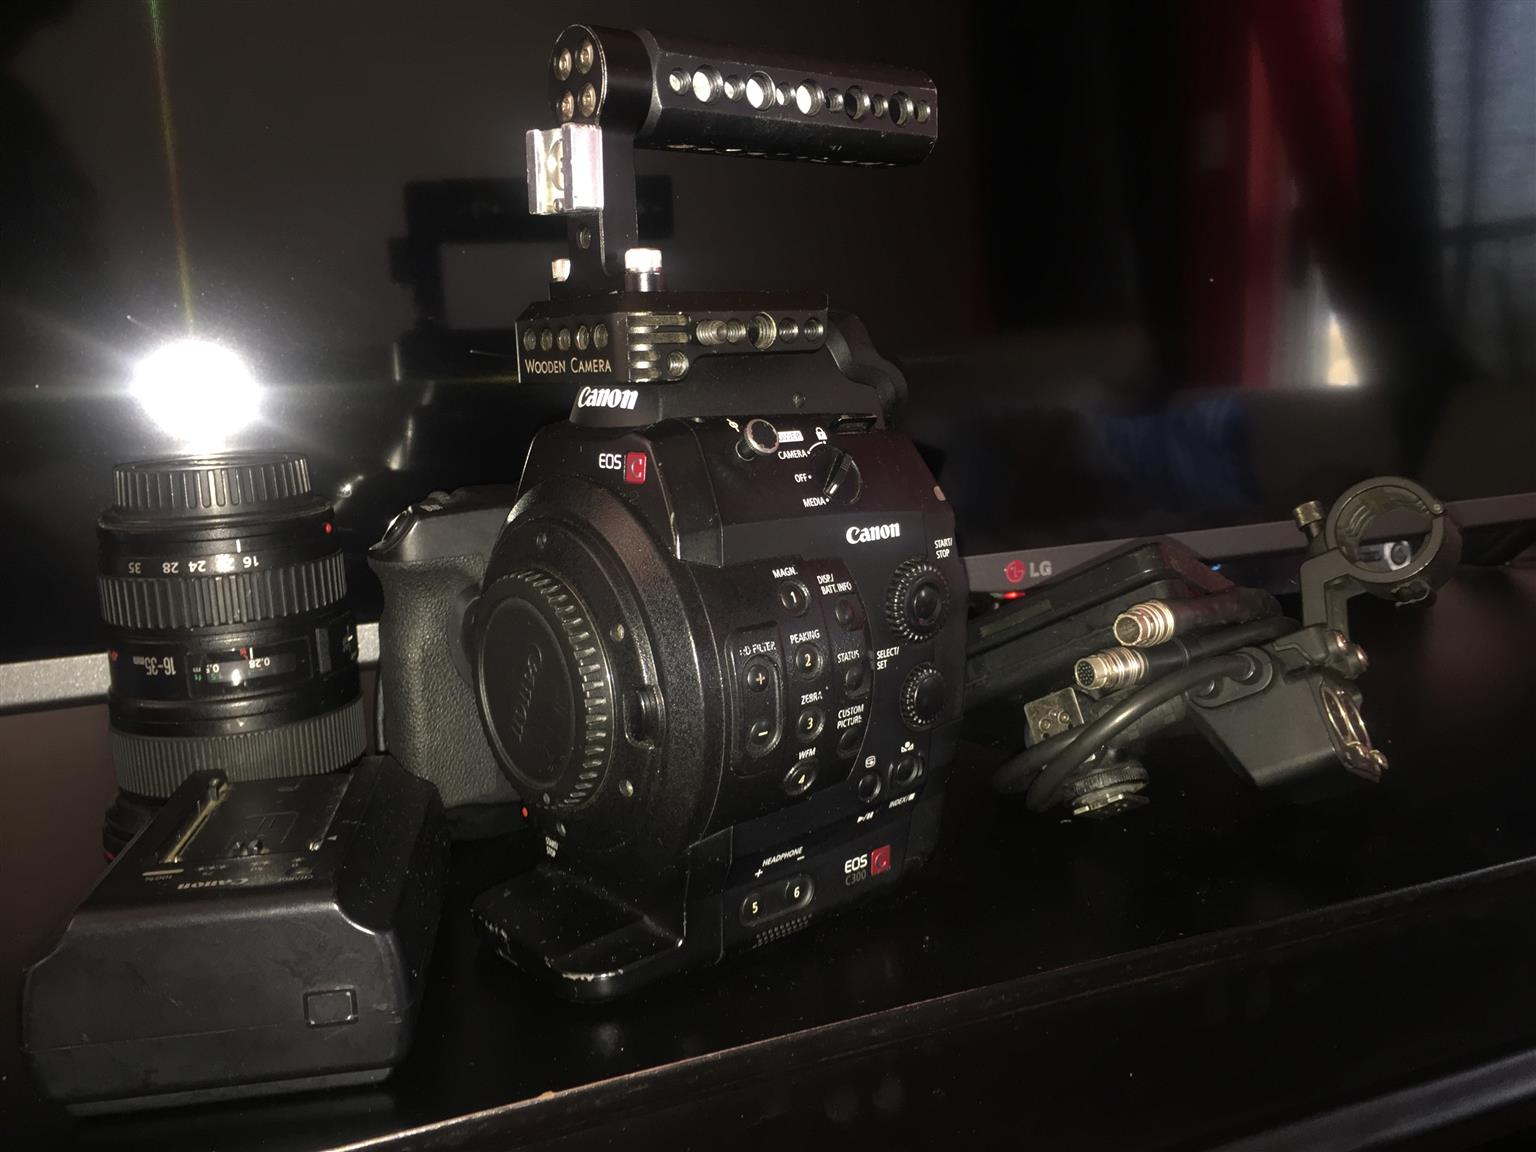 CANON C300 EOS CINEMA CAMERA (FOR CHEAP AS I WANT TO UPGRADE)